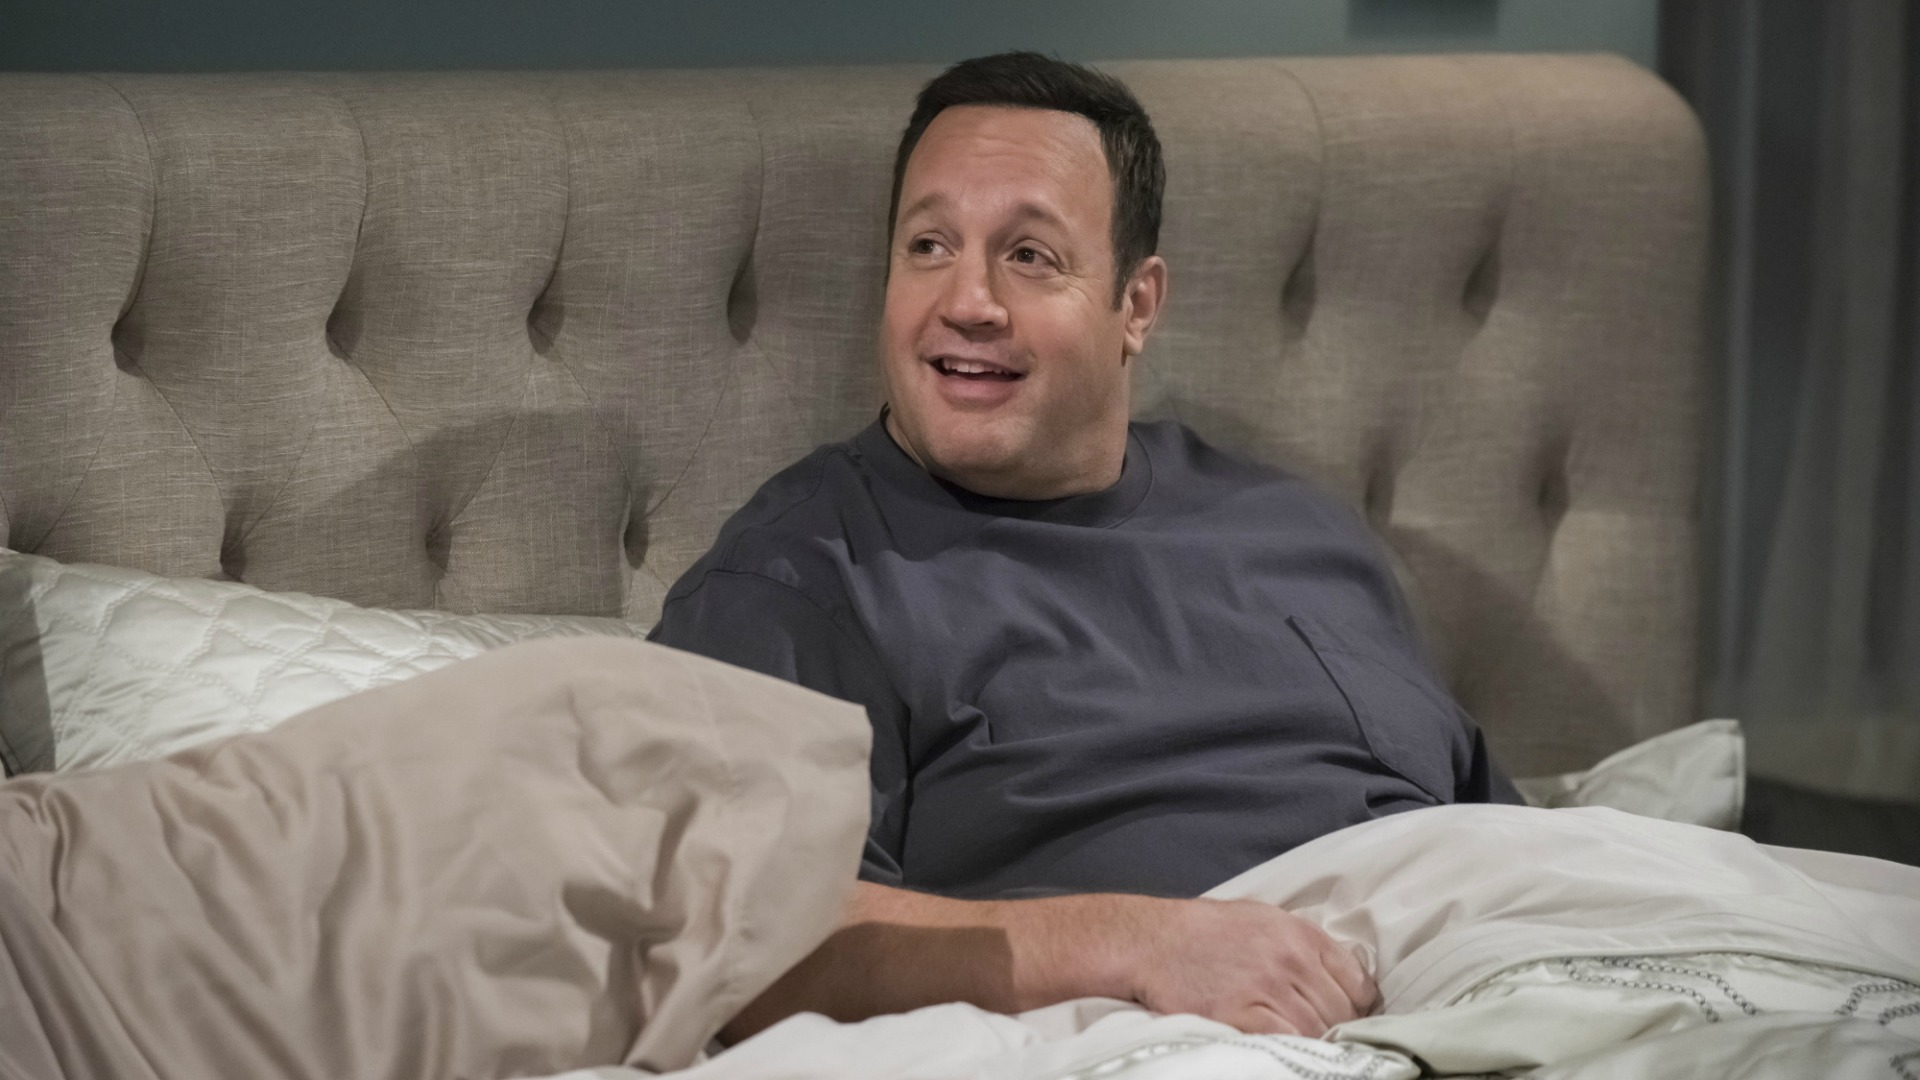 Kevin gets cozy in bed.